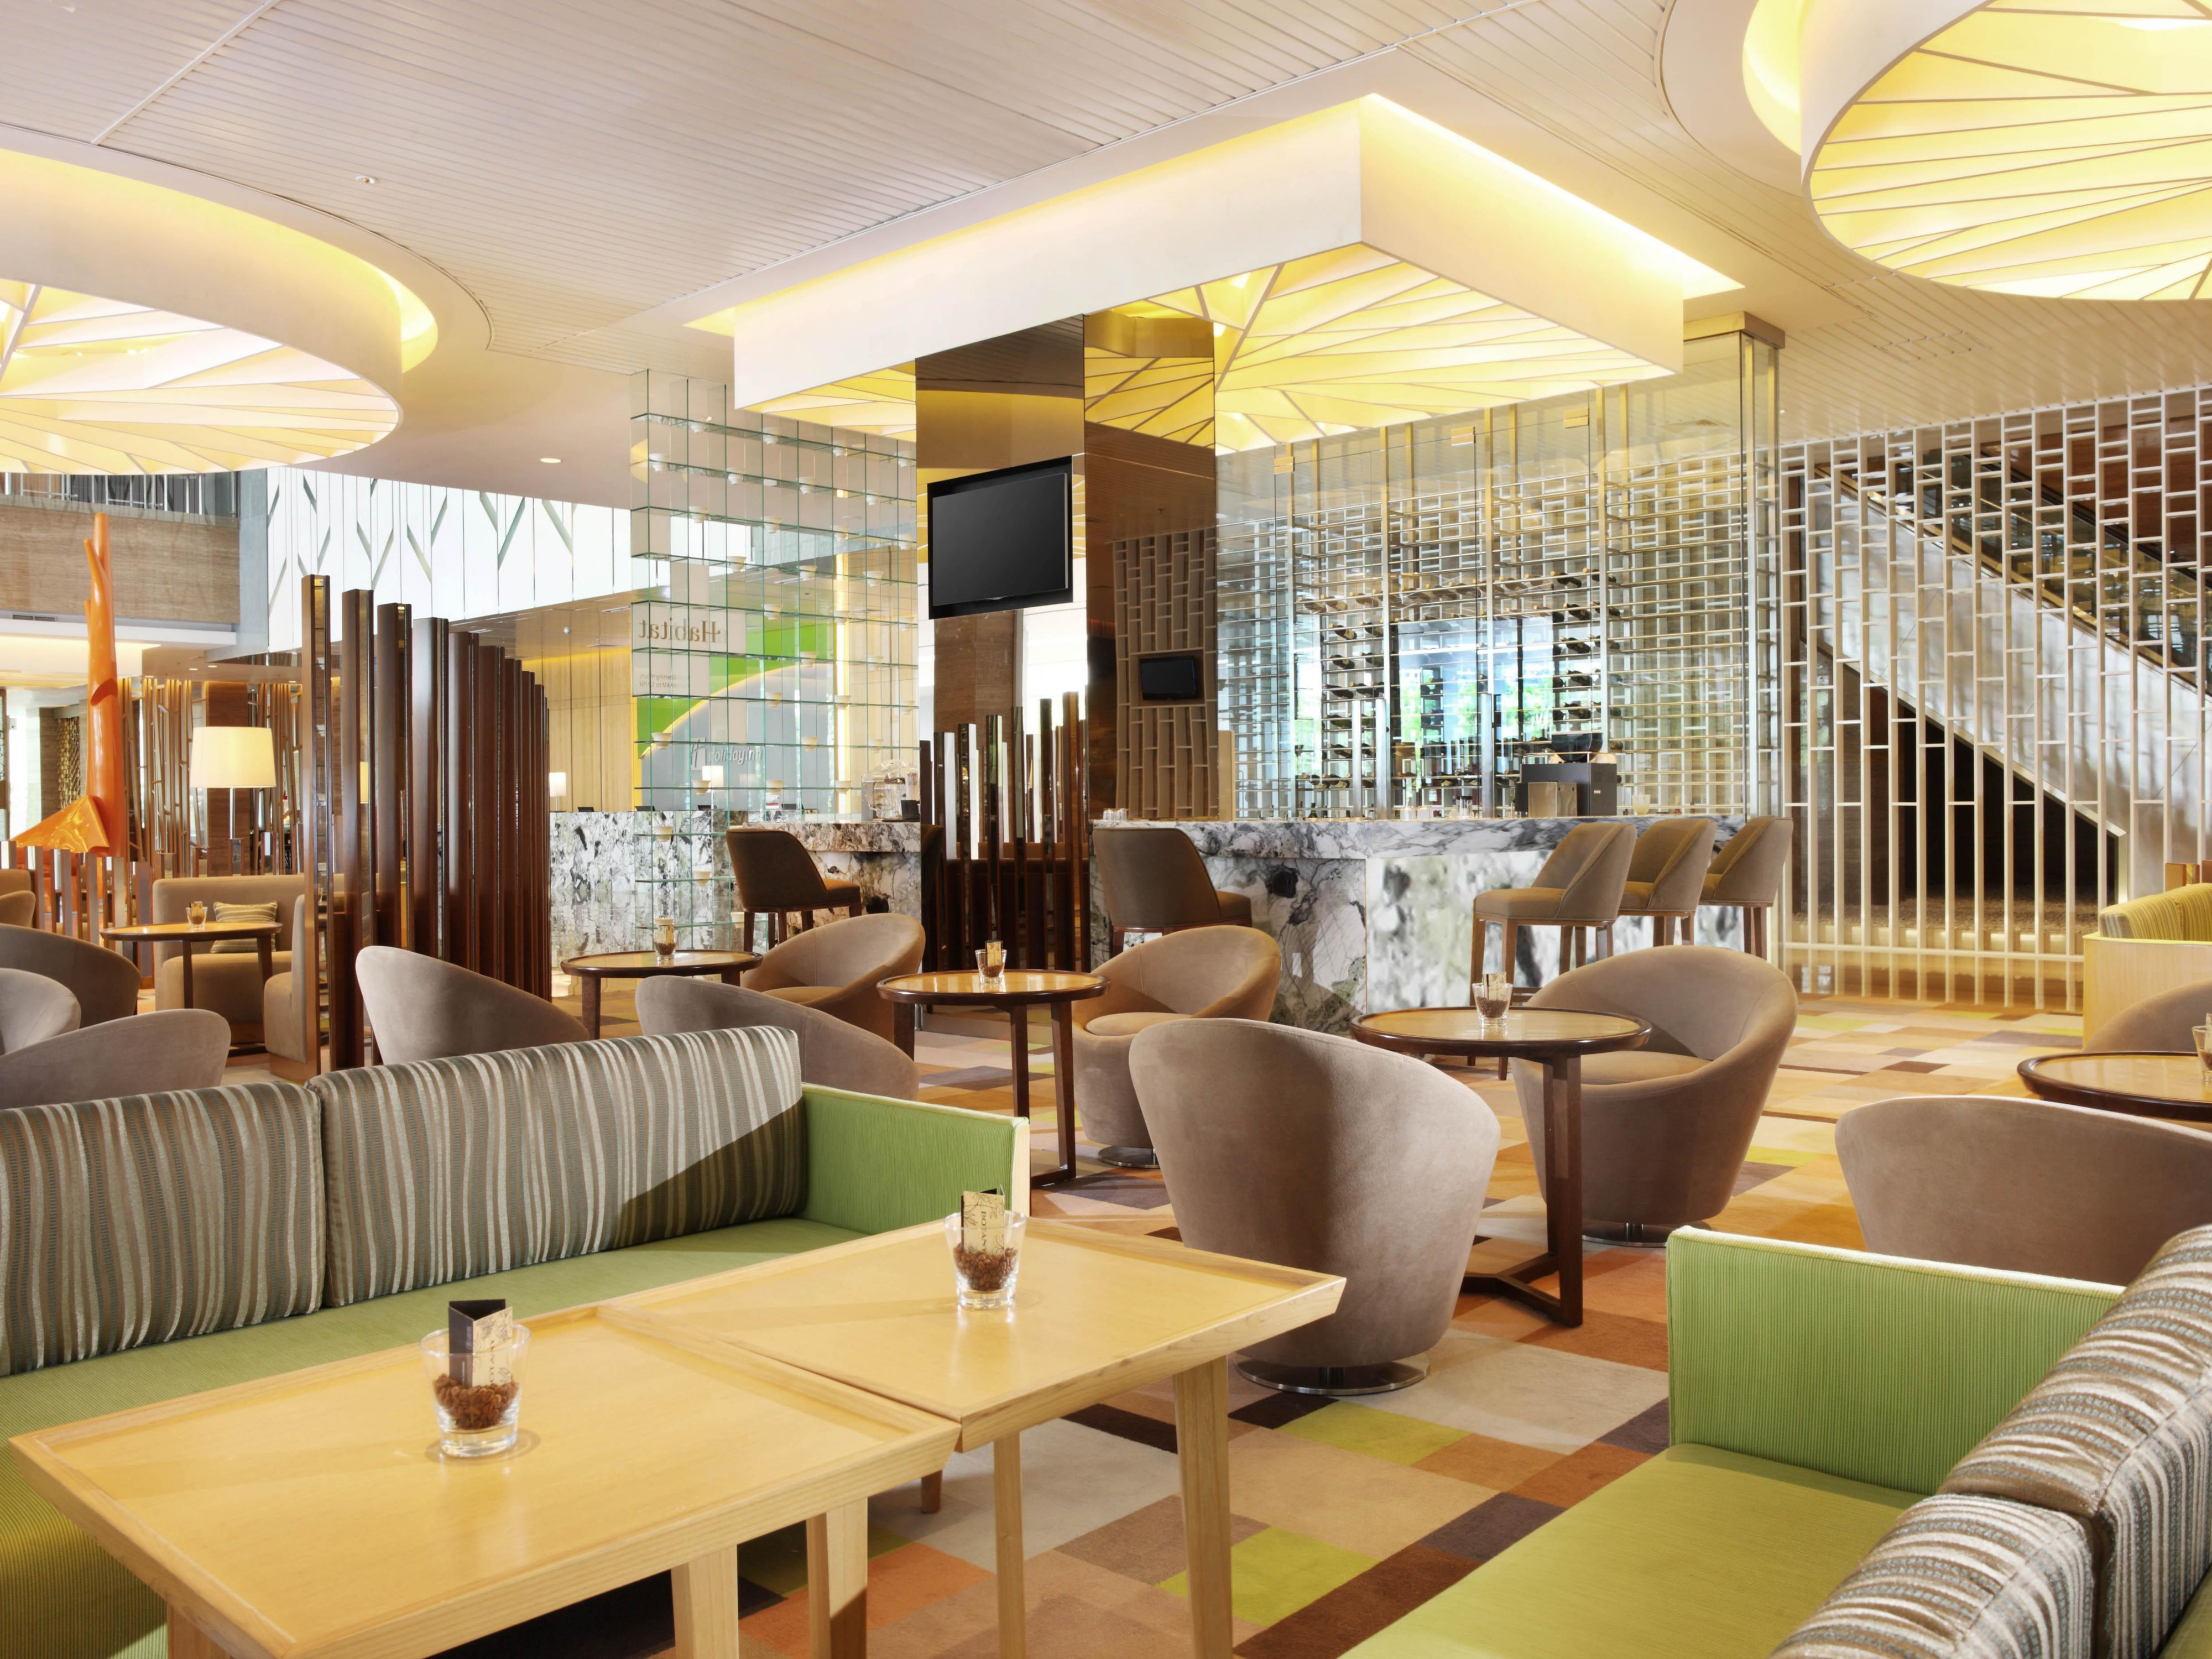 Indulge with your favorite cocktail at Habitat Lobby Lounge